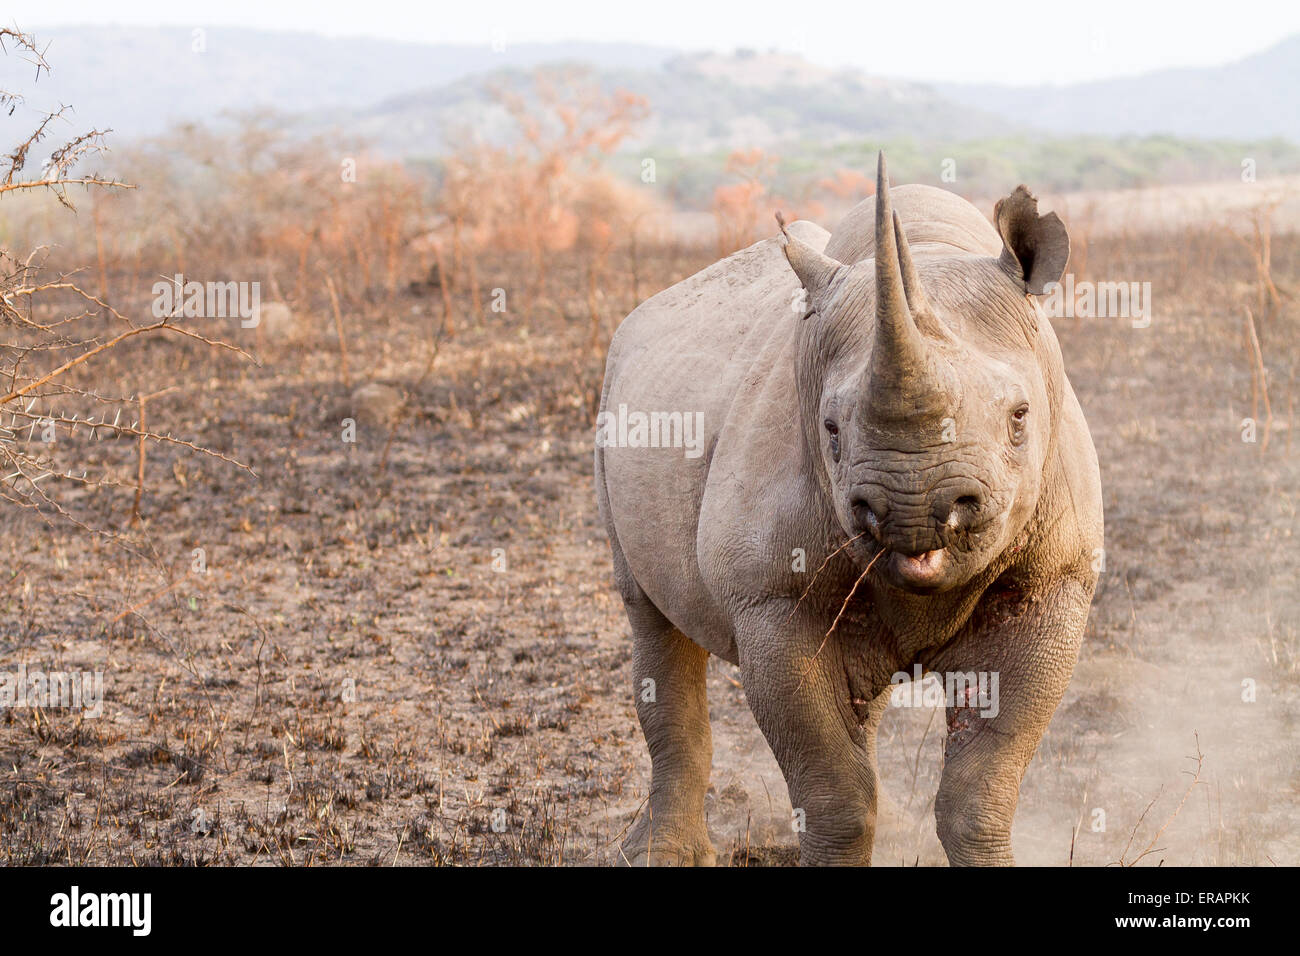 Charging black rhino at Phinda Private Game Reserve, South Africa - Stock Image